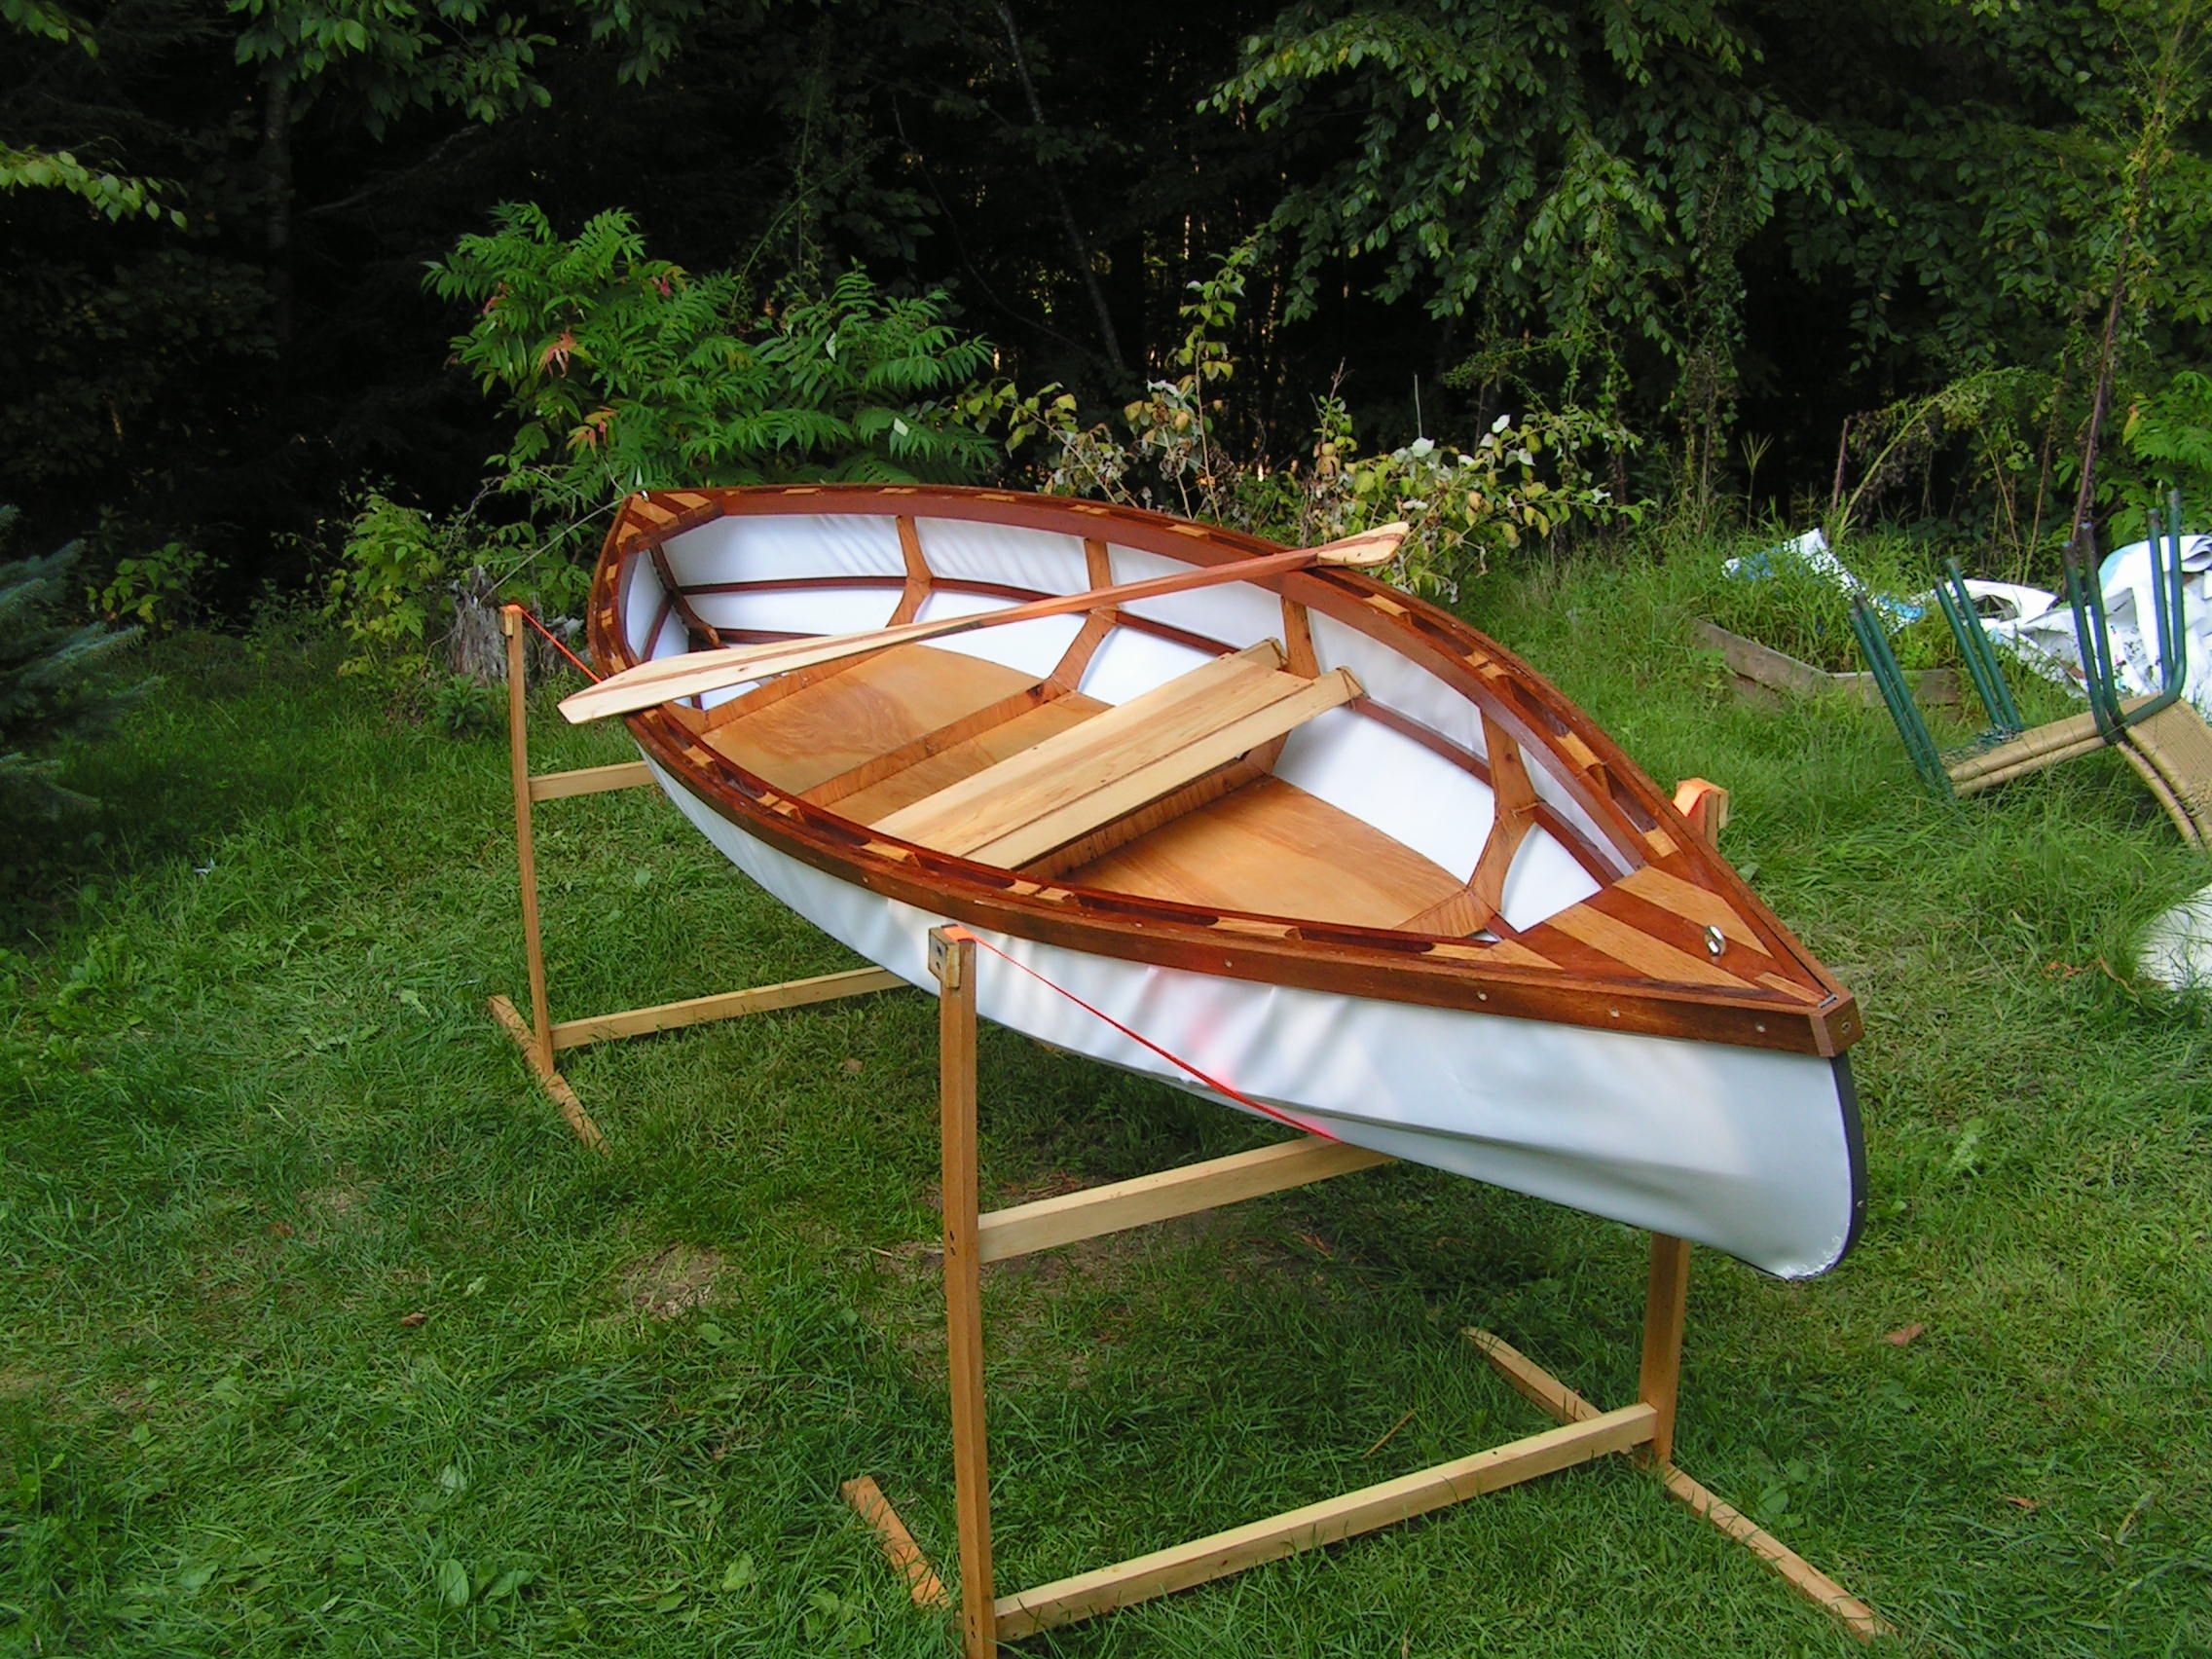 234 best wood canoe images on Pinterest | Wood boats, Wooden boats ...